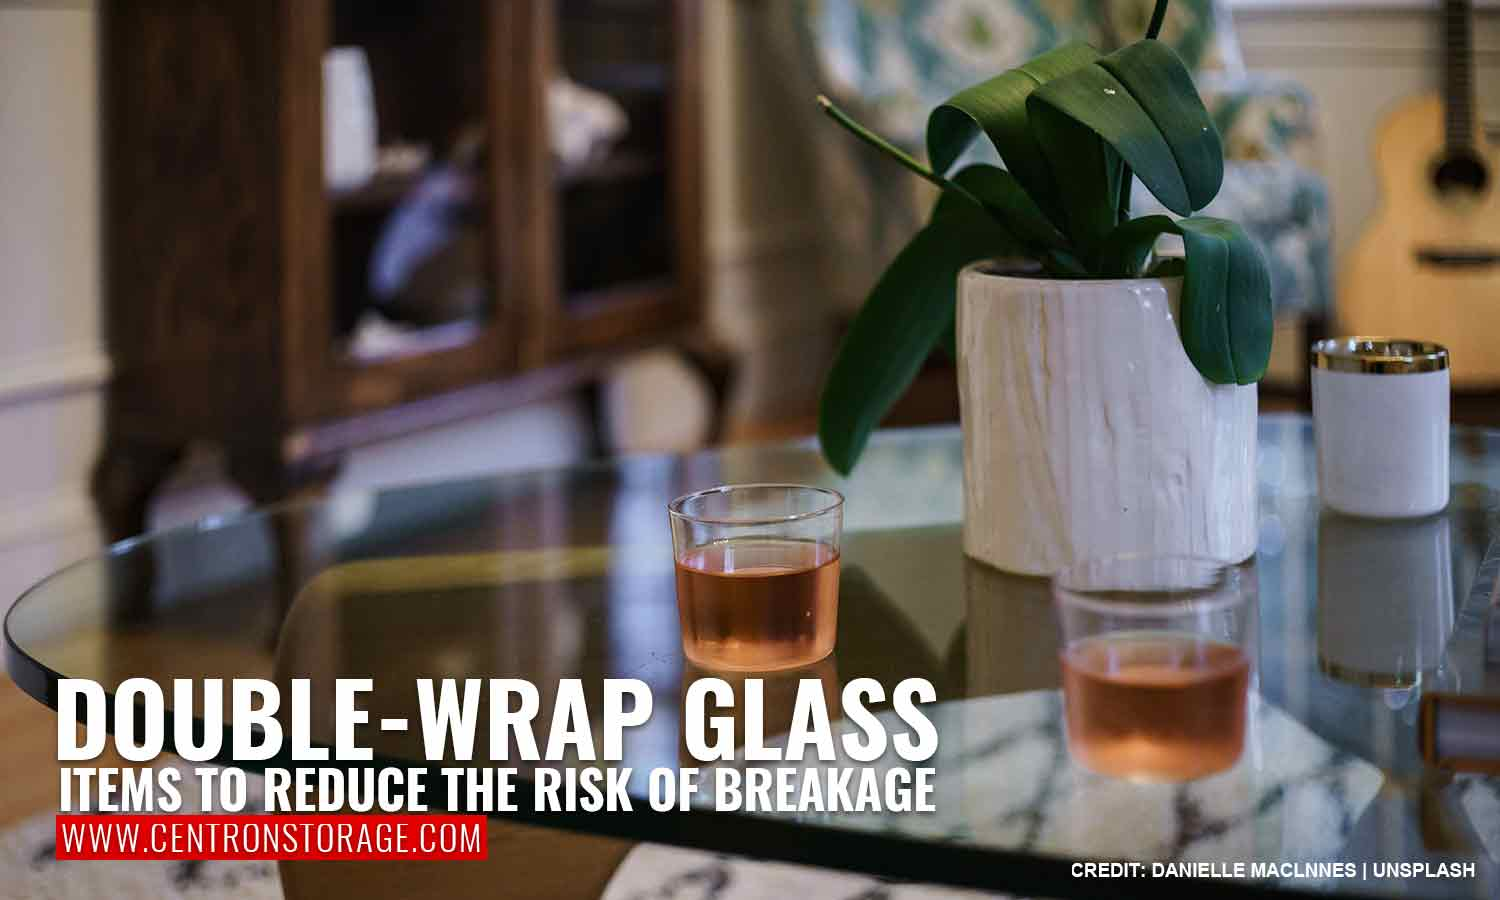 Double-wrap glass items to reduce the risk of breakage